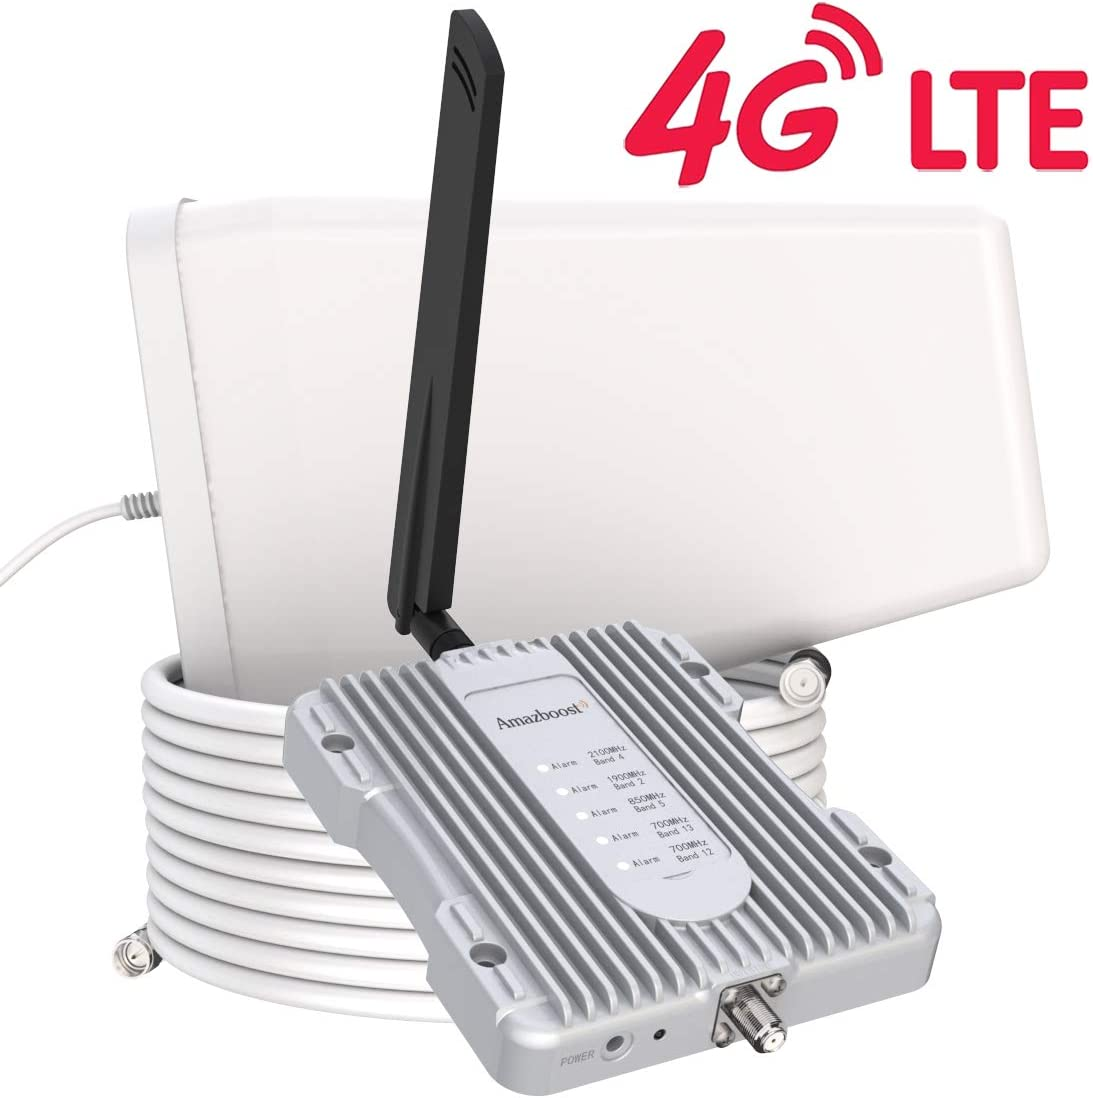 Amazboost Cell Phone Booster for Home -Up to 2,500 sq ft,Cell Phone Signal Booster Kit,All U.S. Carriers -Verizon,AT&T, T-Mobile, Sprint & More-4G 3G 2G LTE FCC Approved